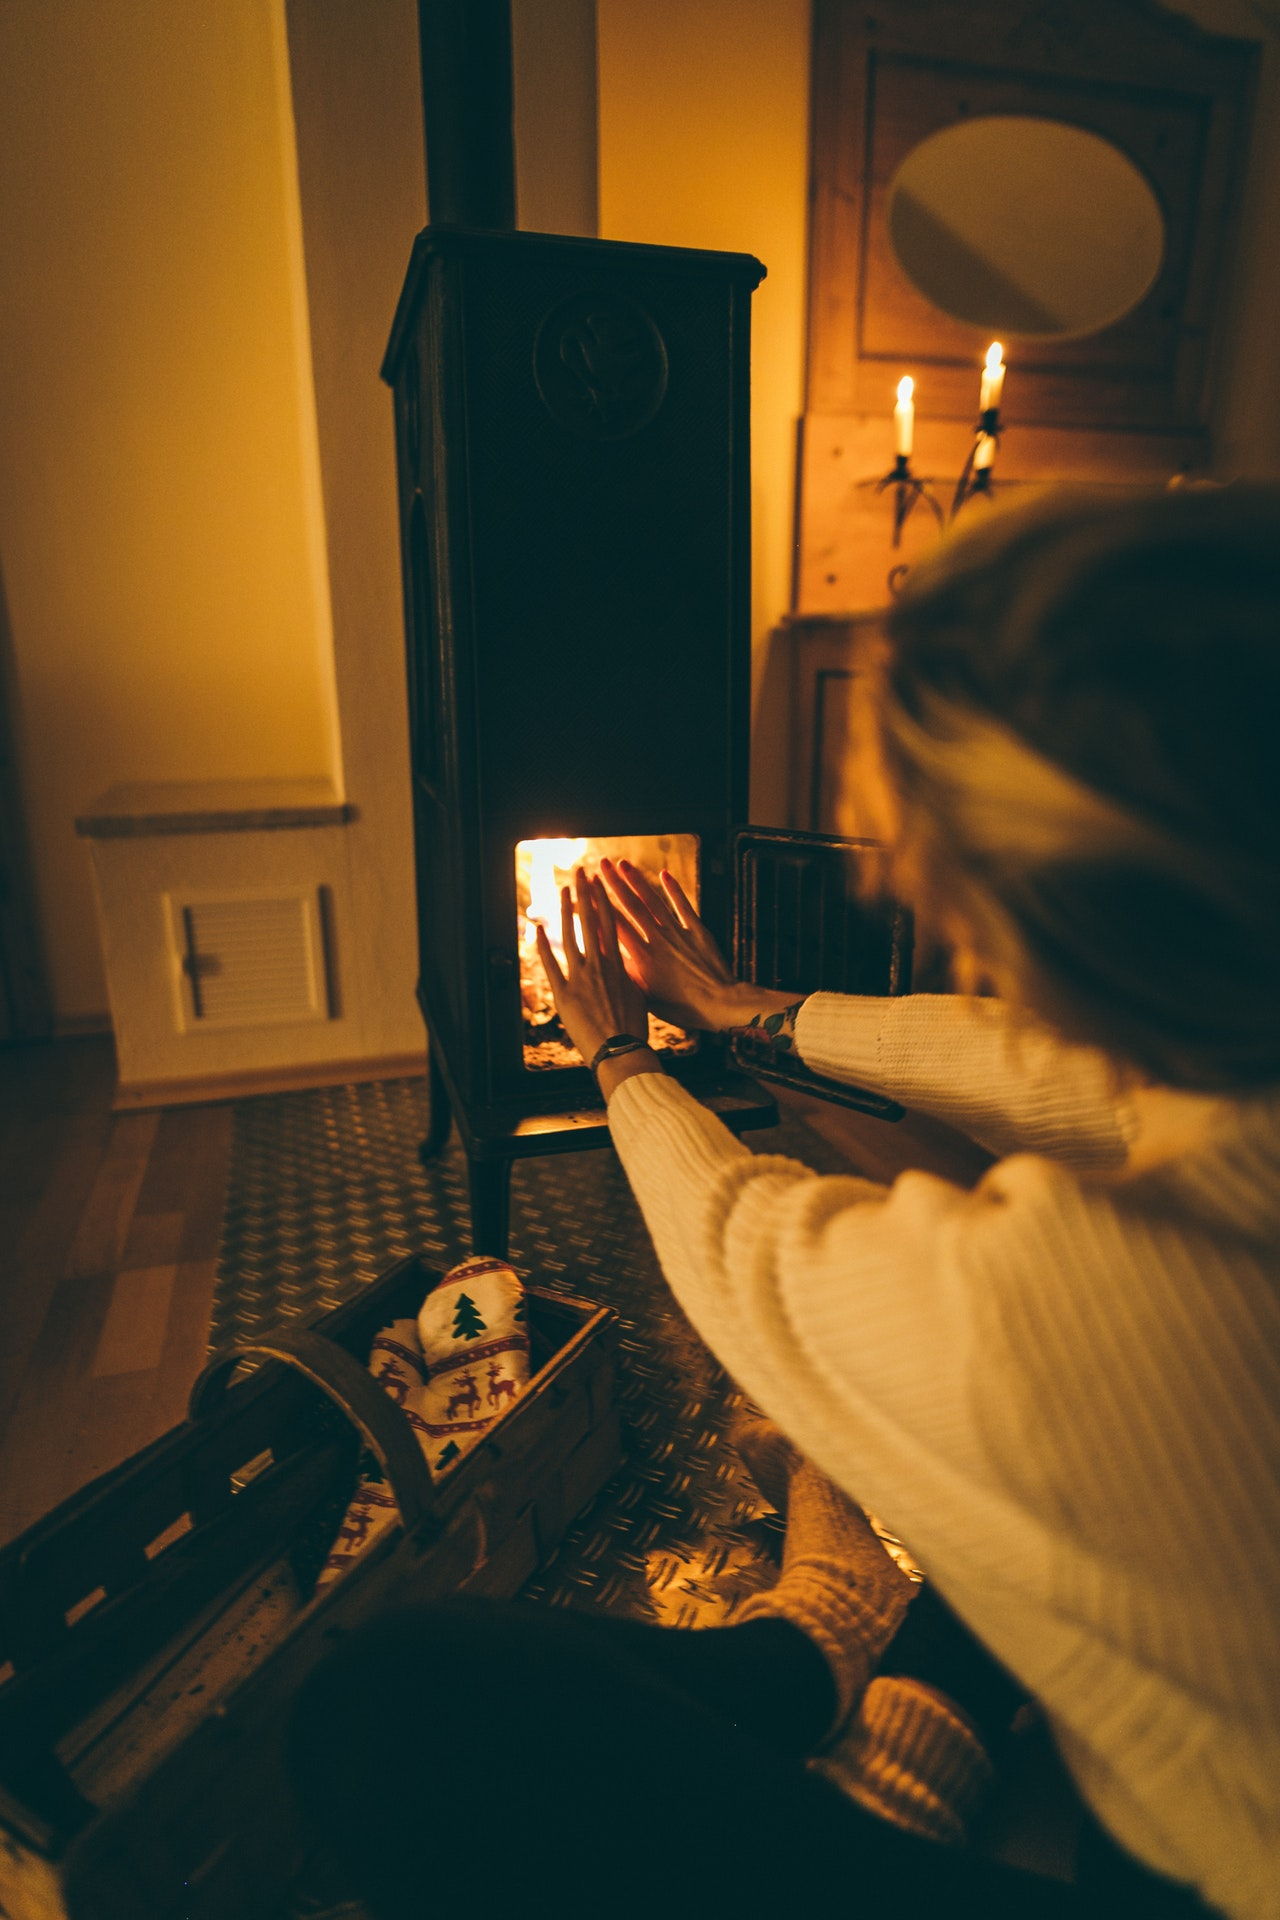 Woman warming hands in front of fire place